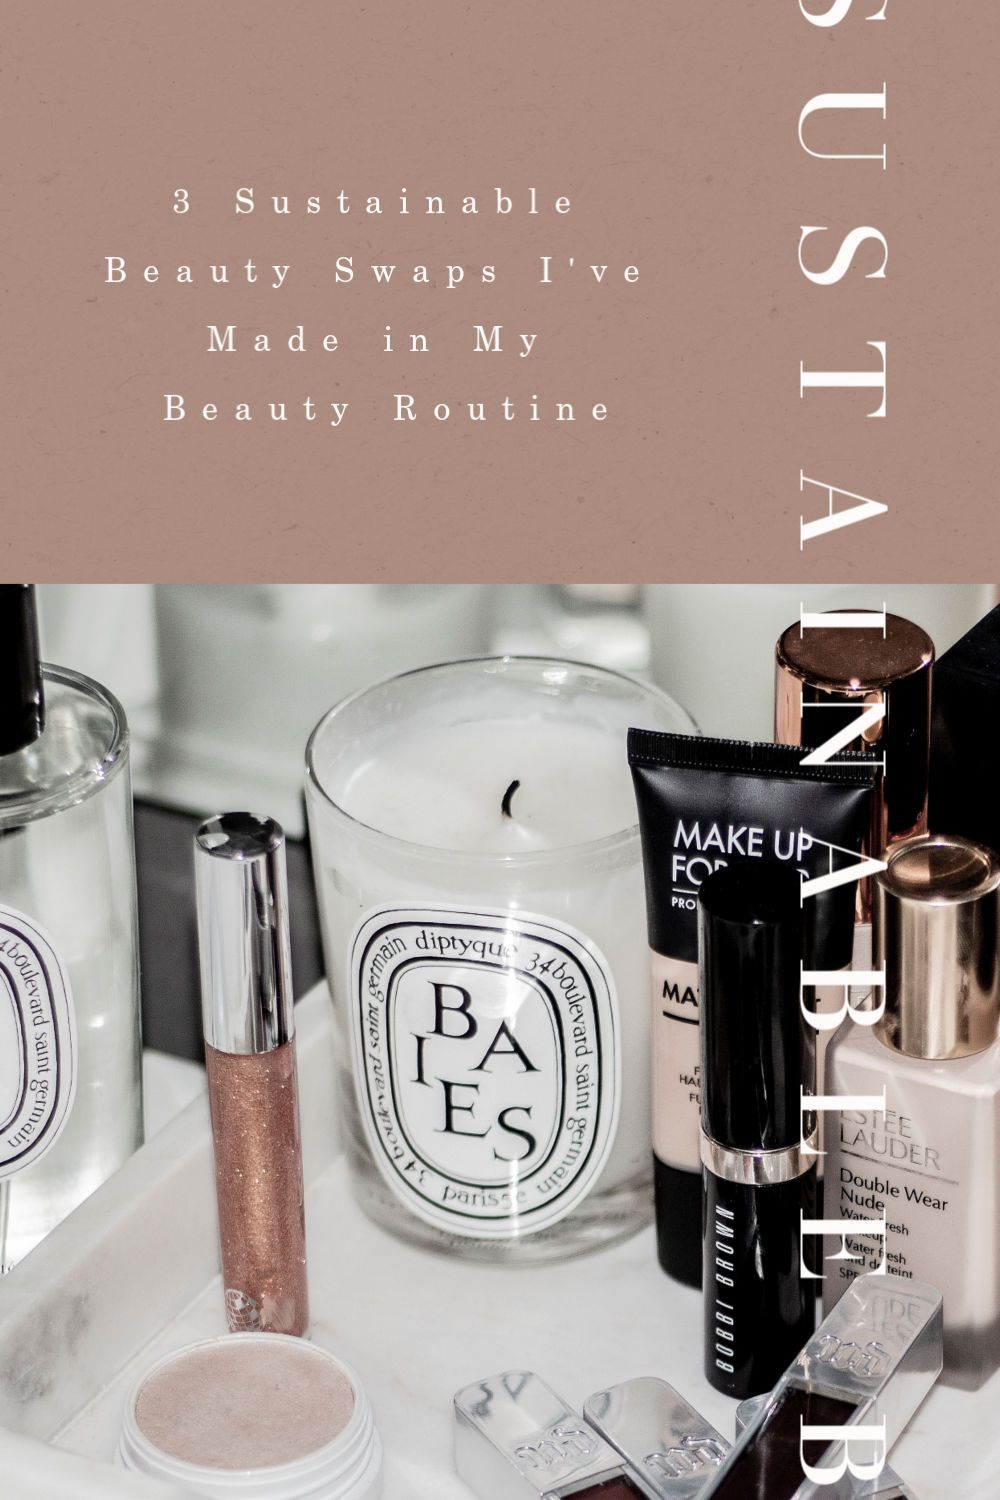 3 Sustainable Swaps I've Made in My Beauty Routine My